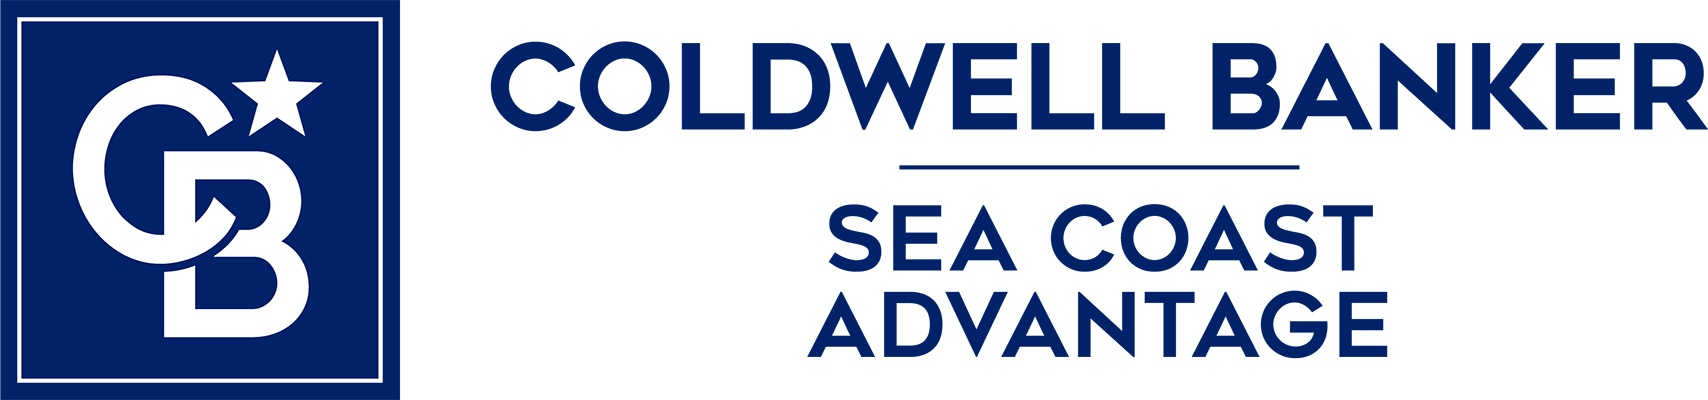 Claudia Unsicker - Coldwell Banker Sea Coast Advantage Realty Logo